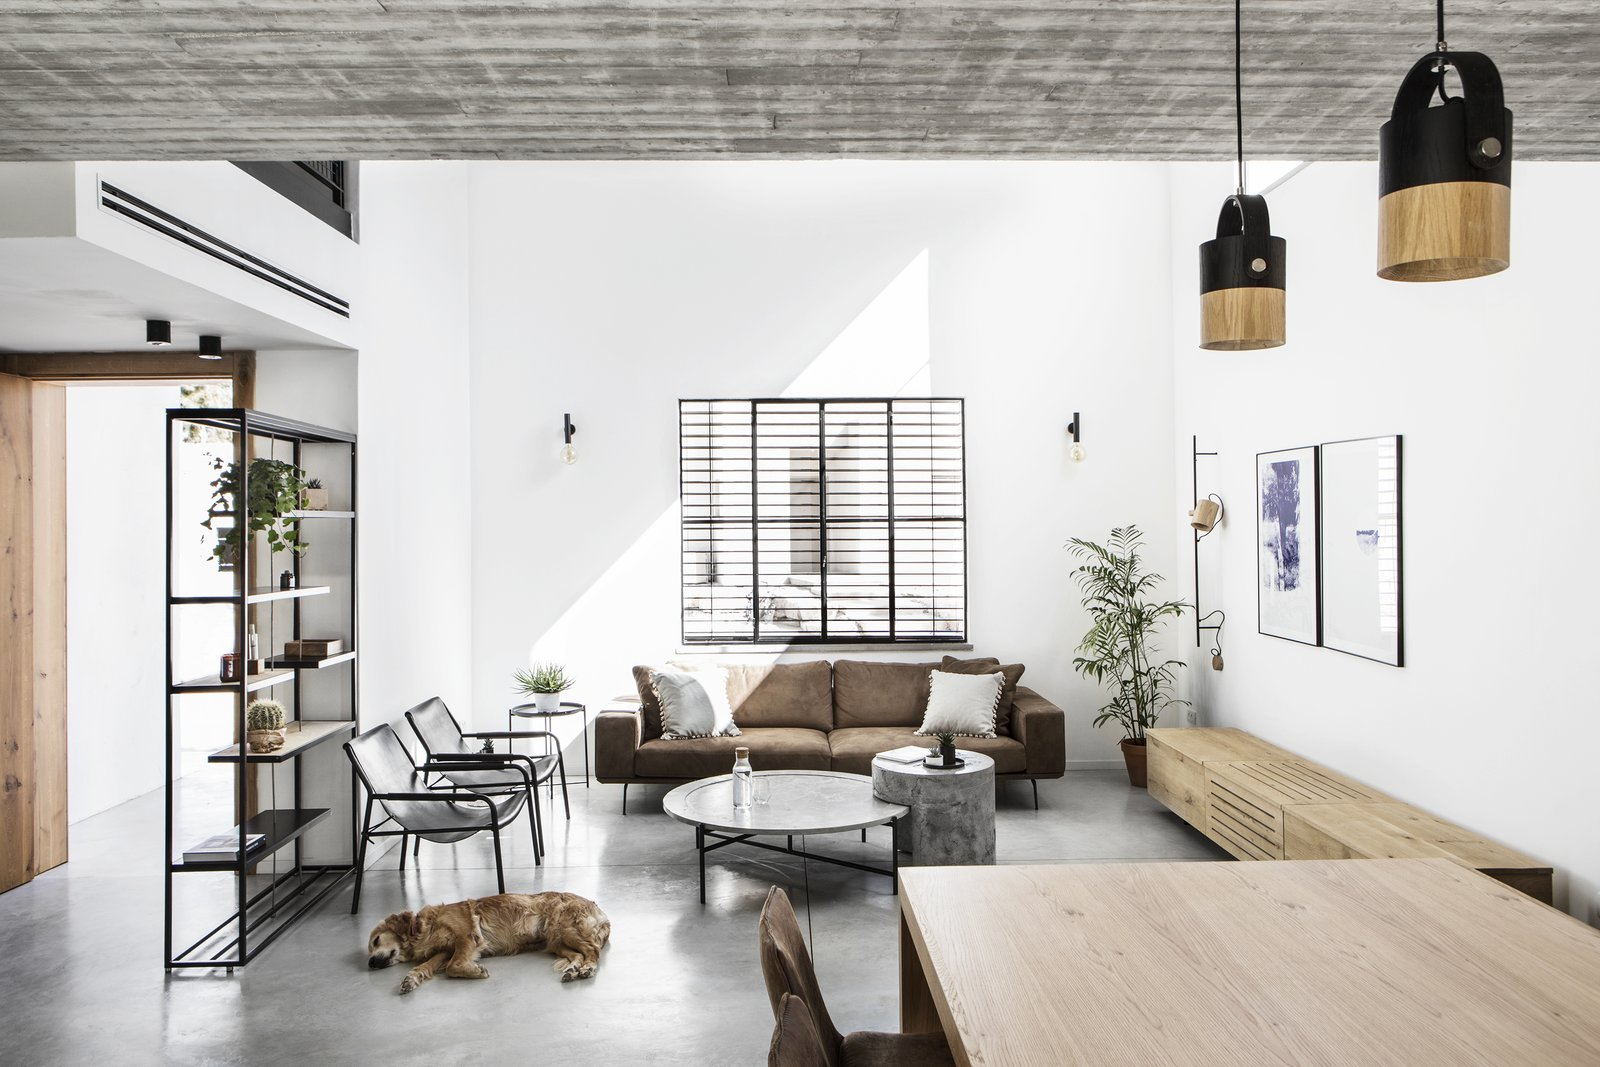 Living Room, Chair, Sofa, Bookcase, Coffee Tables, Pendant Lighting, Wall Lighting, Ceiling Lighting, and Concrete Floor The entrance, living room, and Mika :)  Nir Am House by Shir Shtaigman